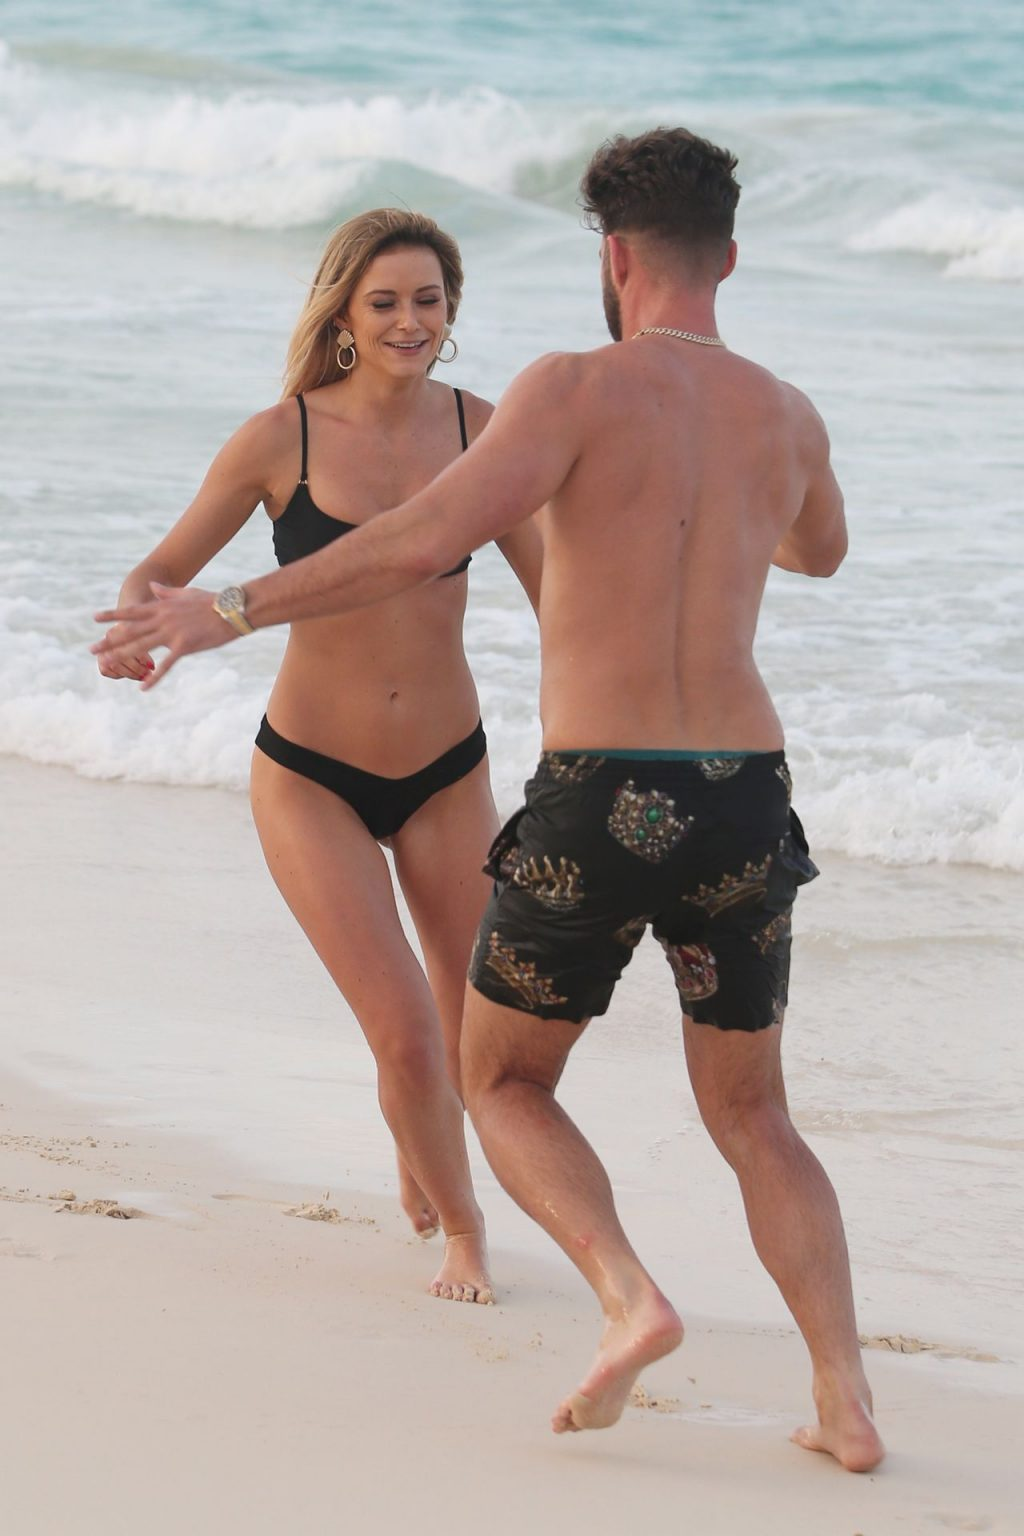 Olivia Bentley Sexy The Fappening Blog 1 1024x1536 - Olivia Bentley and Joshua Ritchie Enjoy Their Vacation in Punta Cuna (26 Photos)